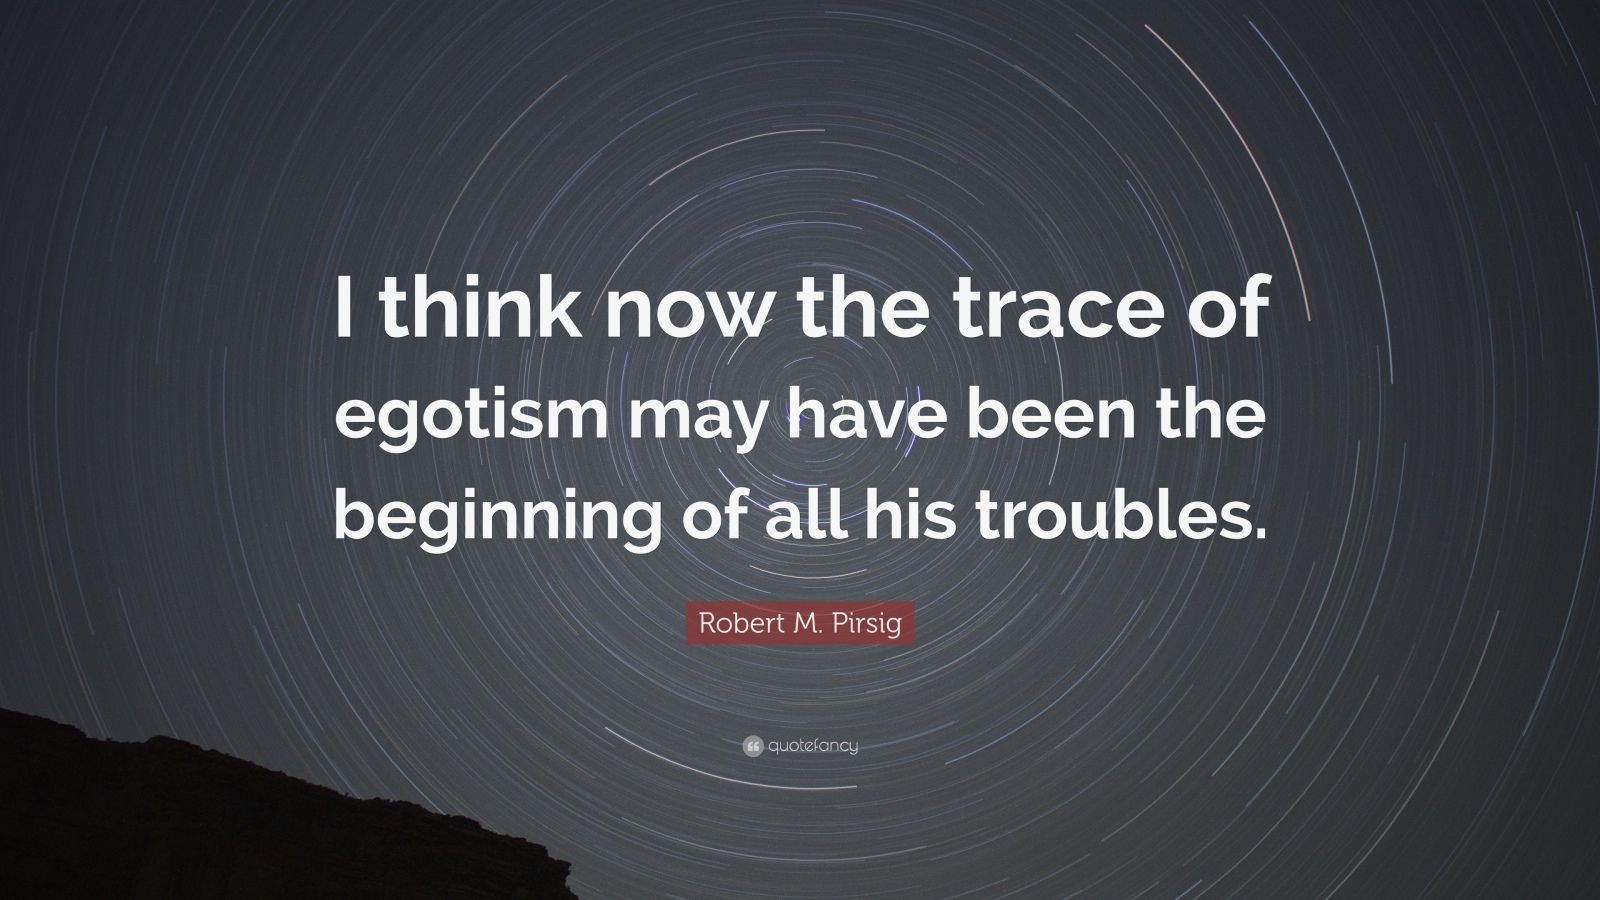 """Robert M. Pirsig Quote: """"I think now the trace of egotism may have been the beginning of all his troubles."""""""